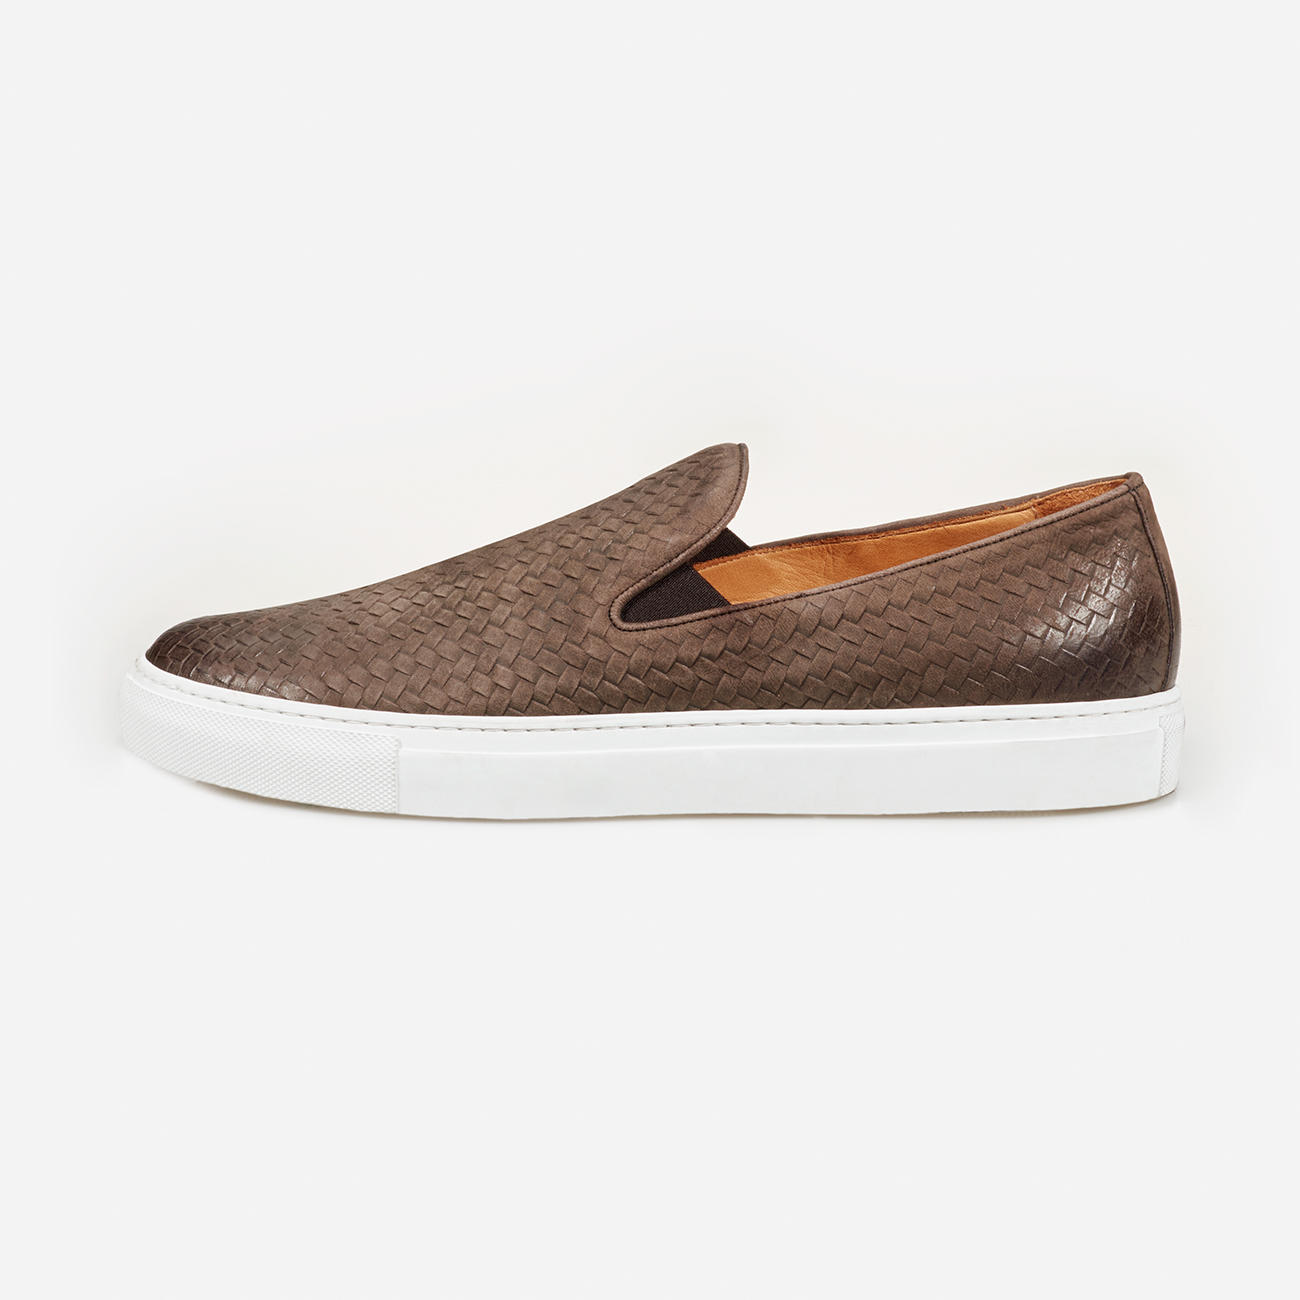 FOOTWEAR - Loafers Bernacchini Outlet Cheap Quality Outlet Deals Free Shipping Sneakernews Fast Express OivdVHt8ZG